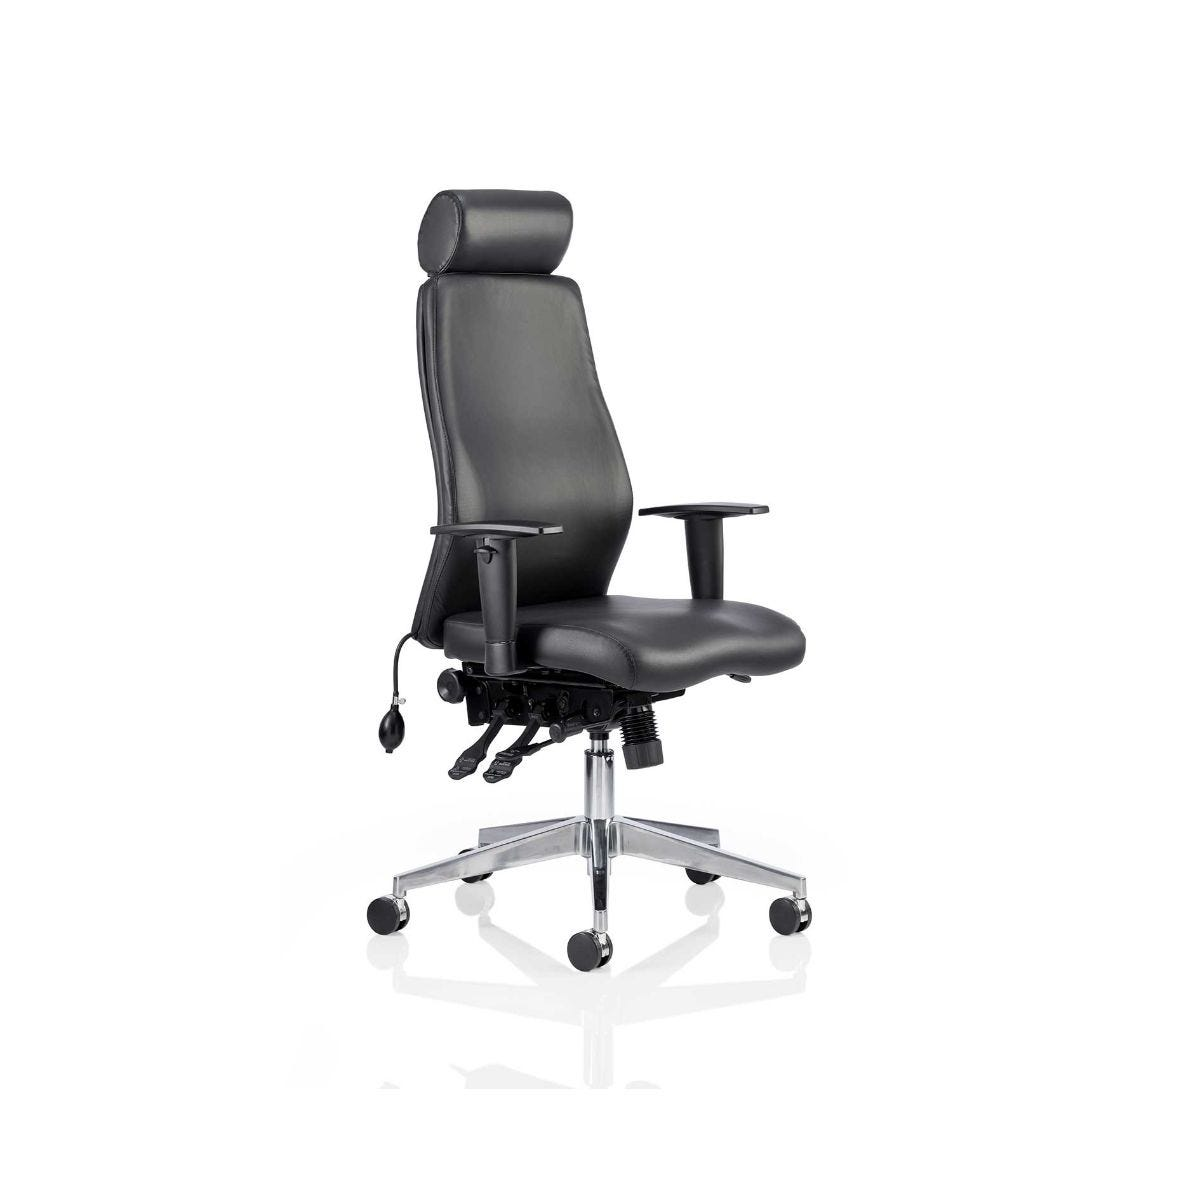 Onyx Leather Posture Office Chair With Headrest, Black